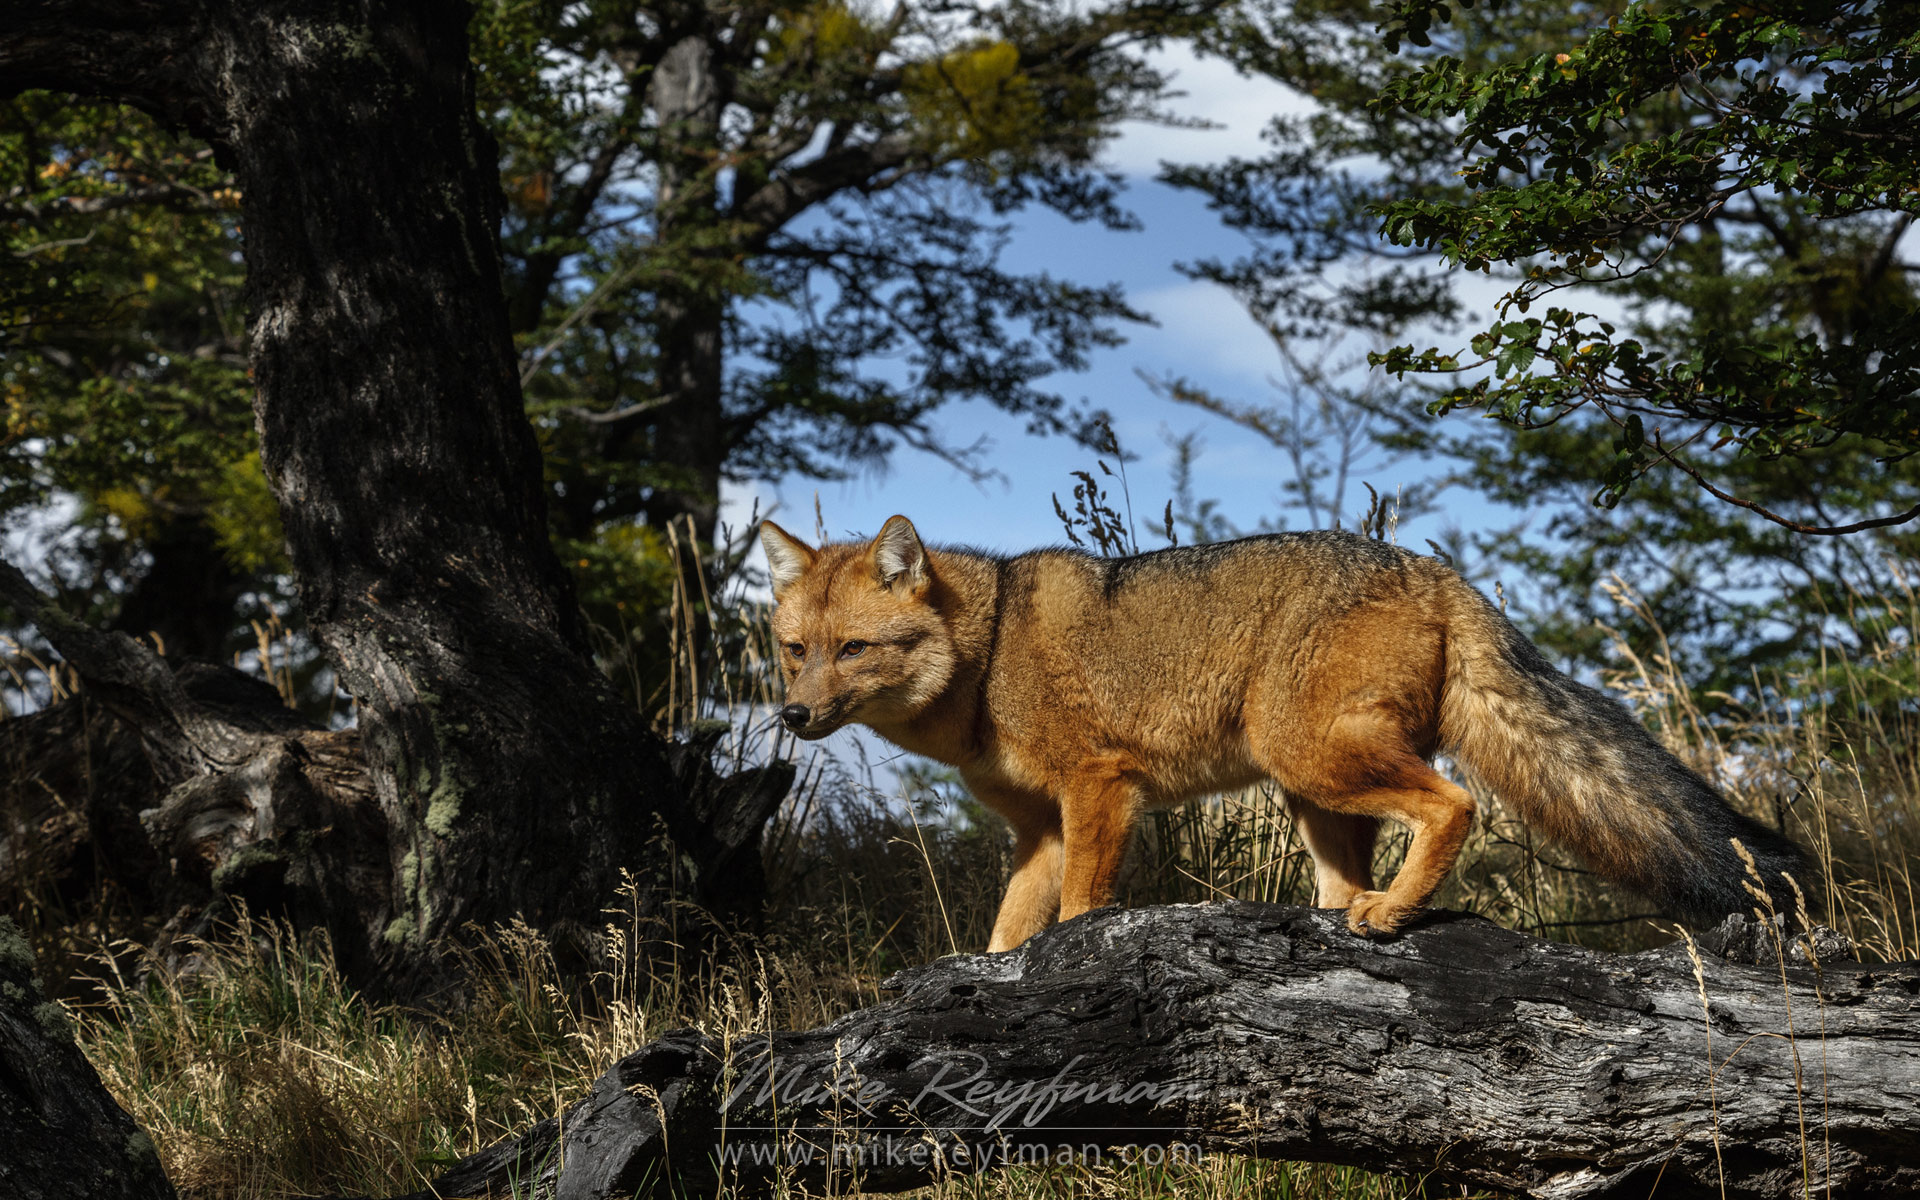 Adult Patagonian Red Fox (Lycalopex culpaeus) standing on the fallen tree. Torres del Paine National Park, Ultima Esperanza Province, Magallanes and Antartica Chilena Region XII, Patagonia, Chile. - Patagonia-Wildlife-and-Horses - Mike Reyfman Photography